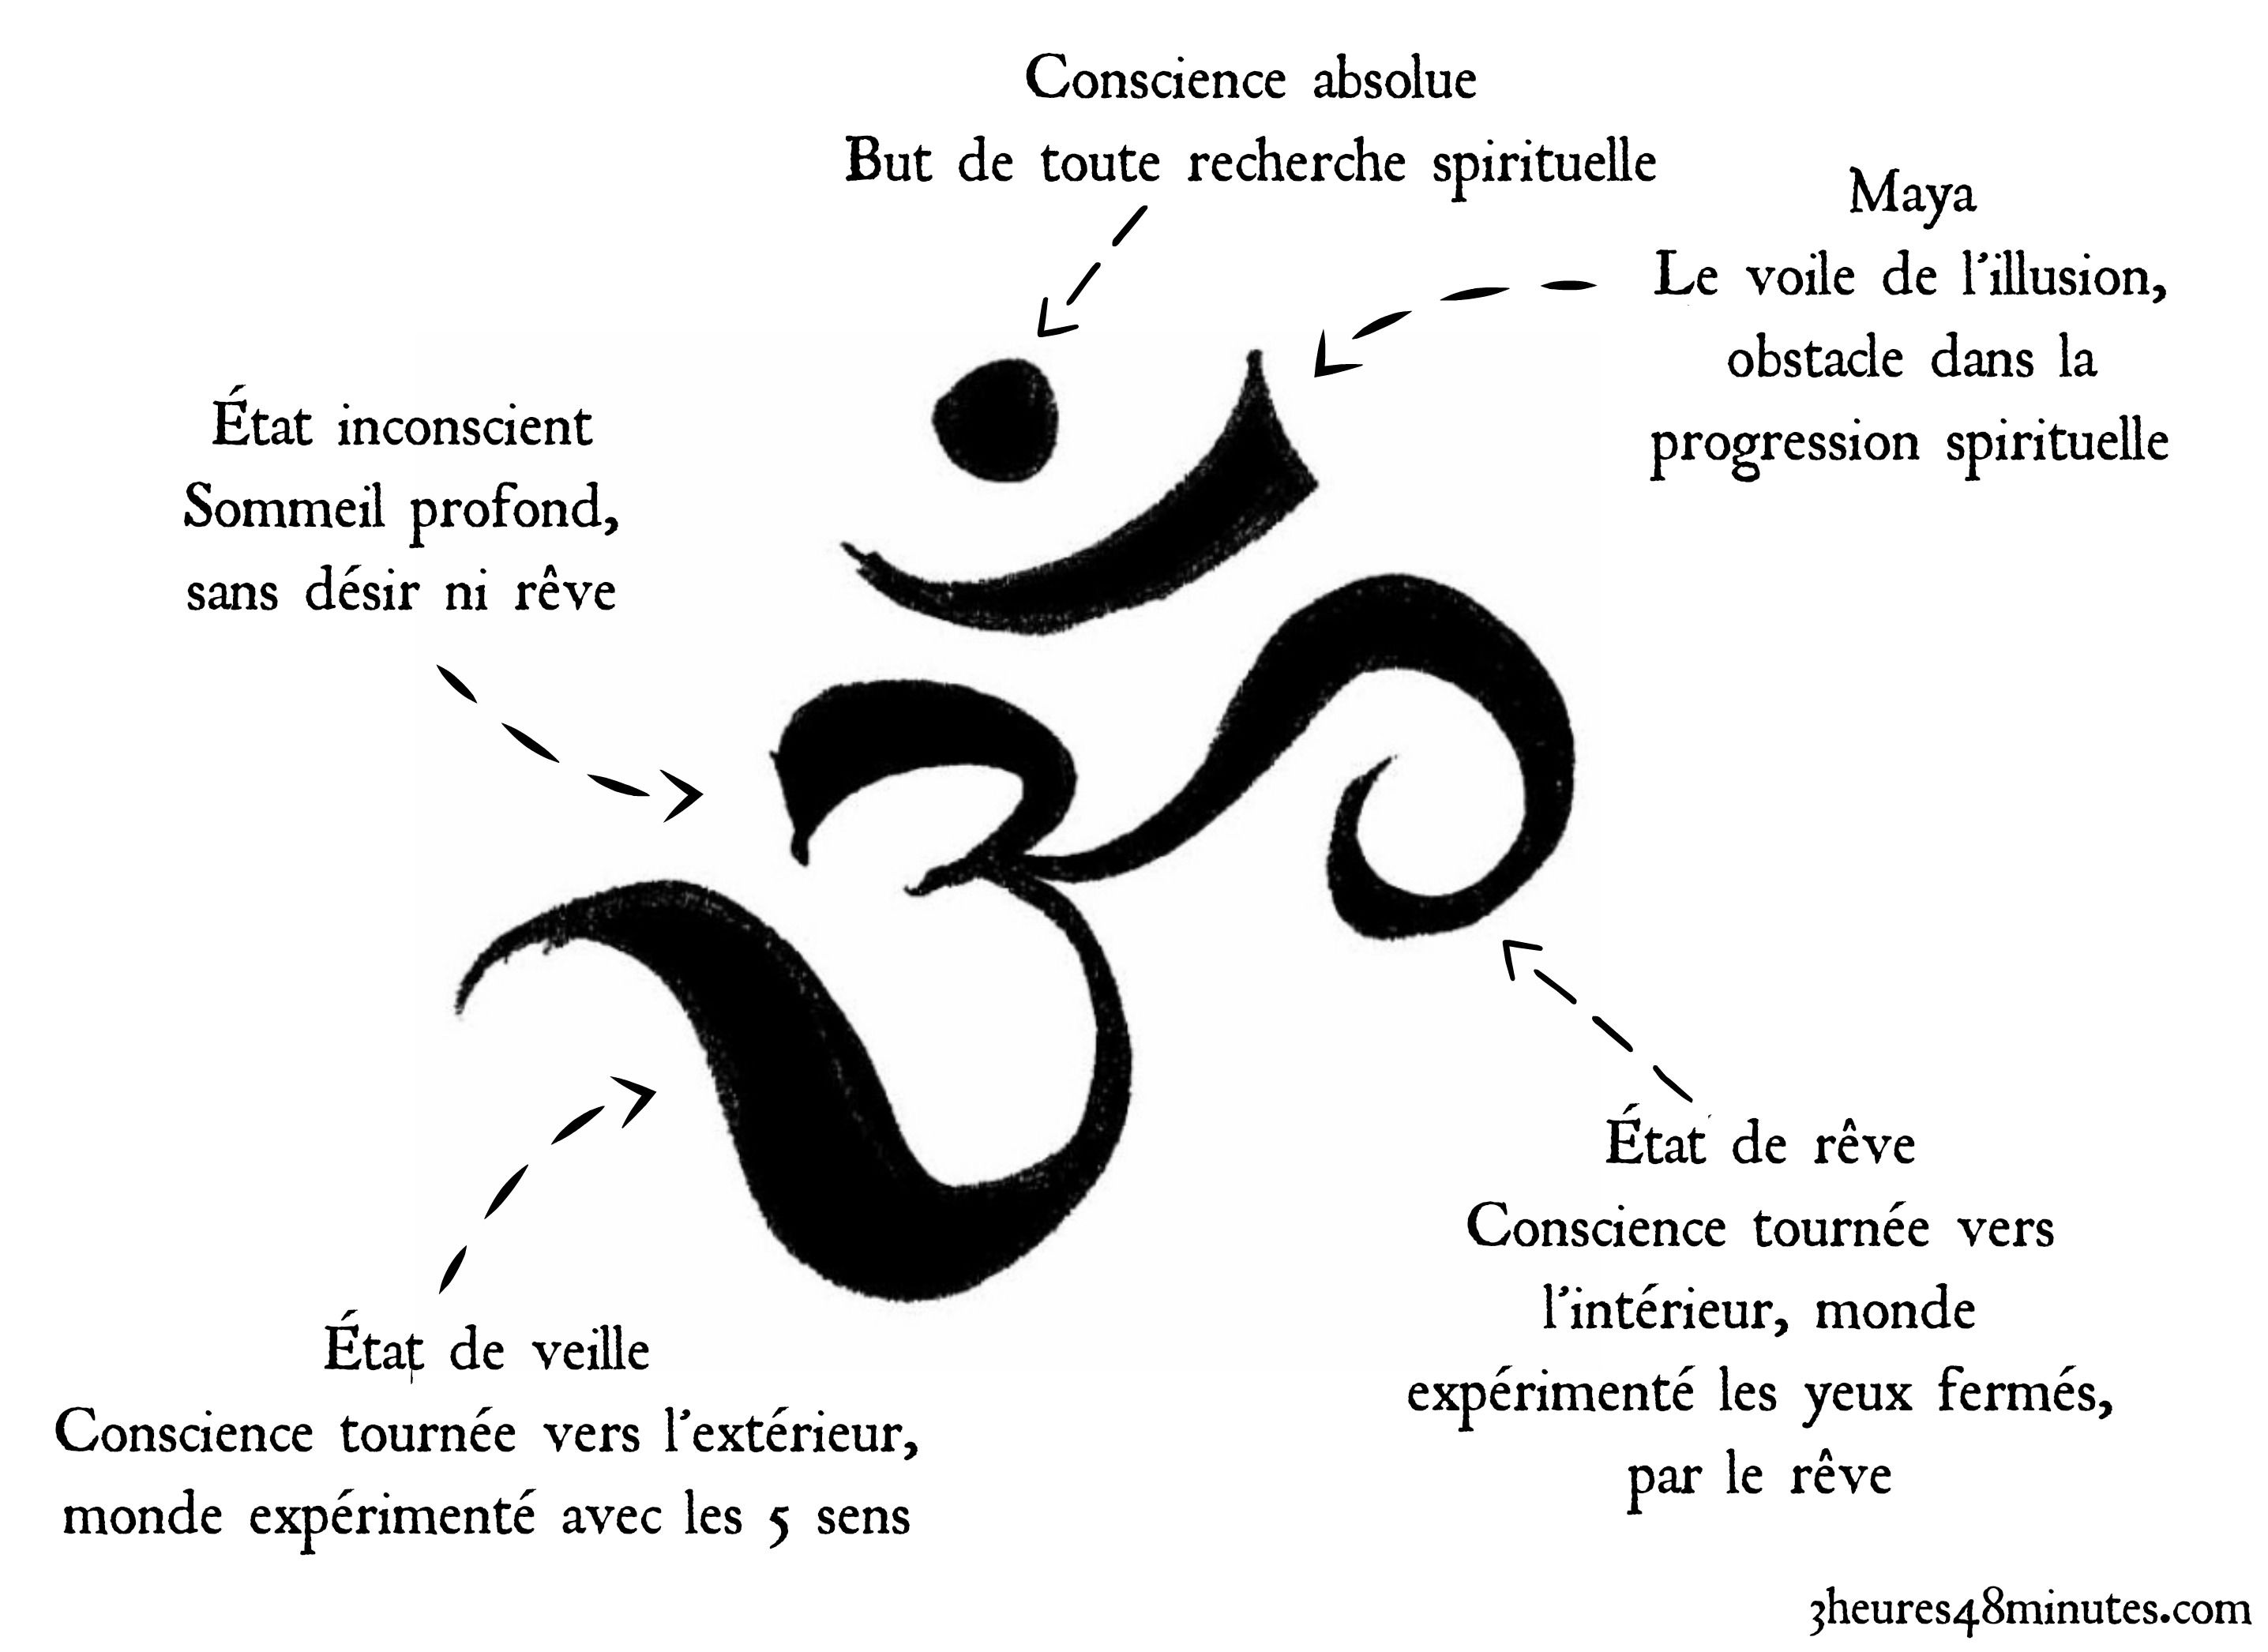 Symbole de la force tatouage galerie tatouage - Symbole bouddhiste om ...